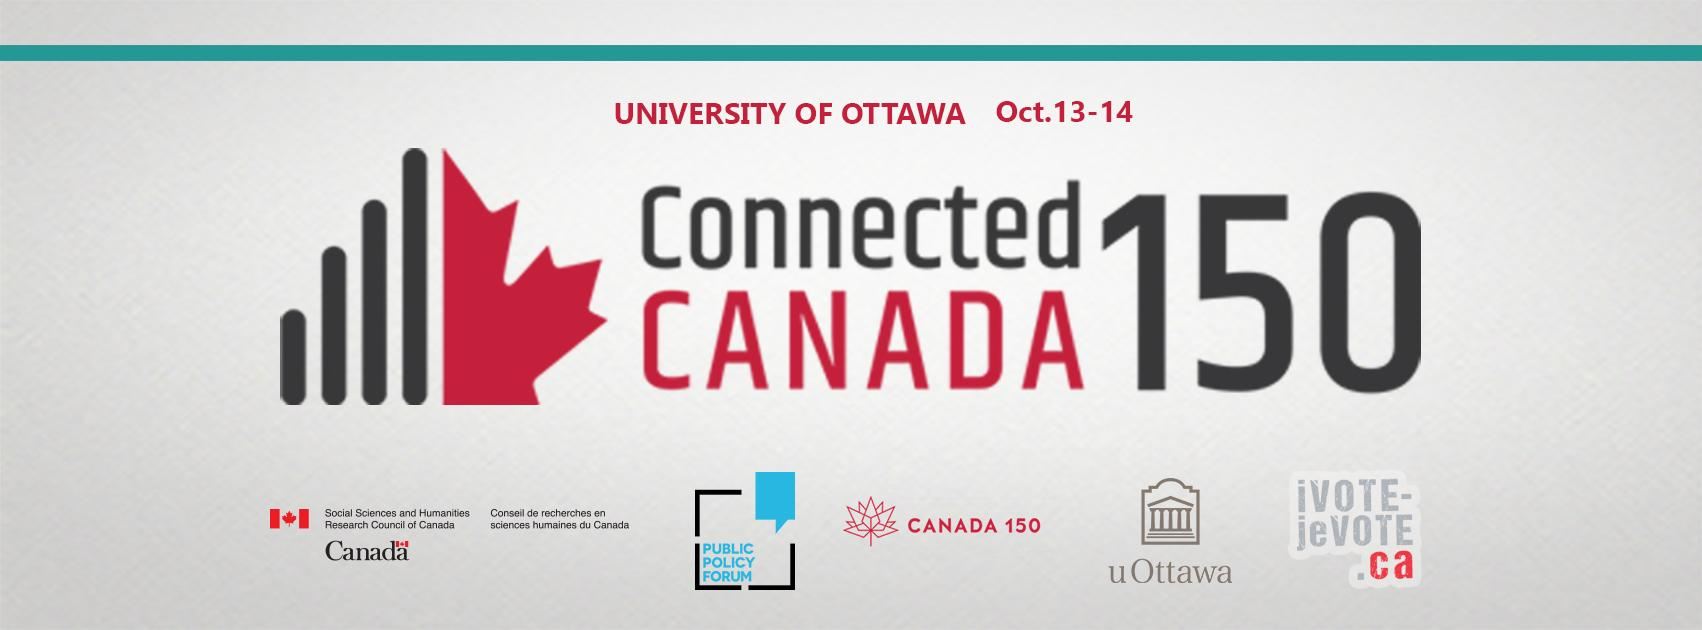 #Connected150: Ontario's Change Mission in a Digital Age - Hillary Hartley